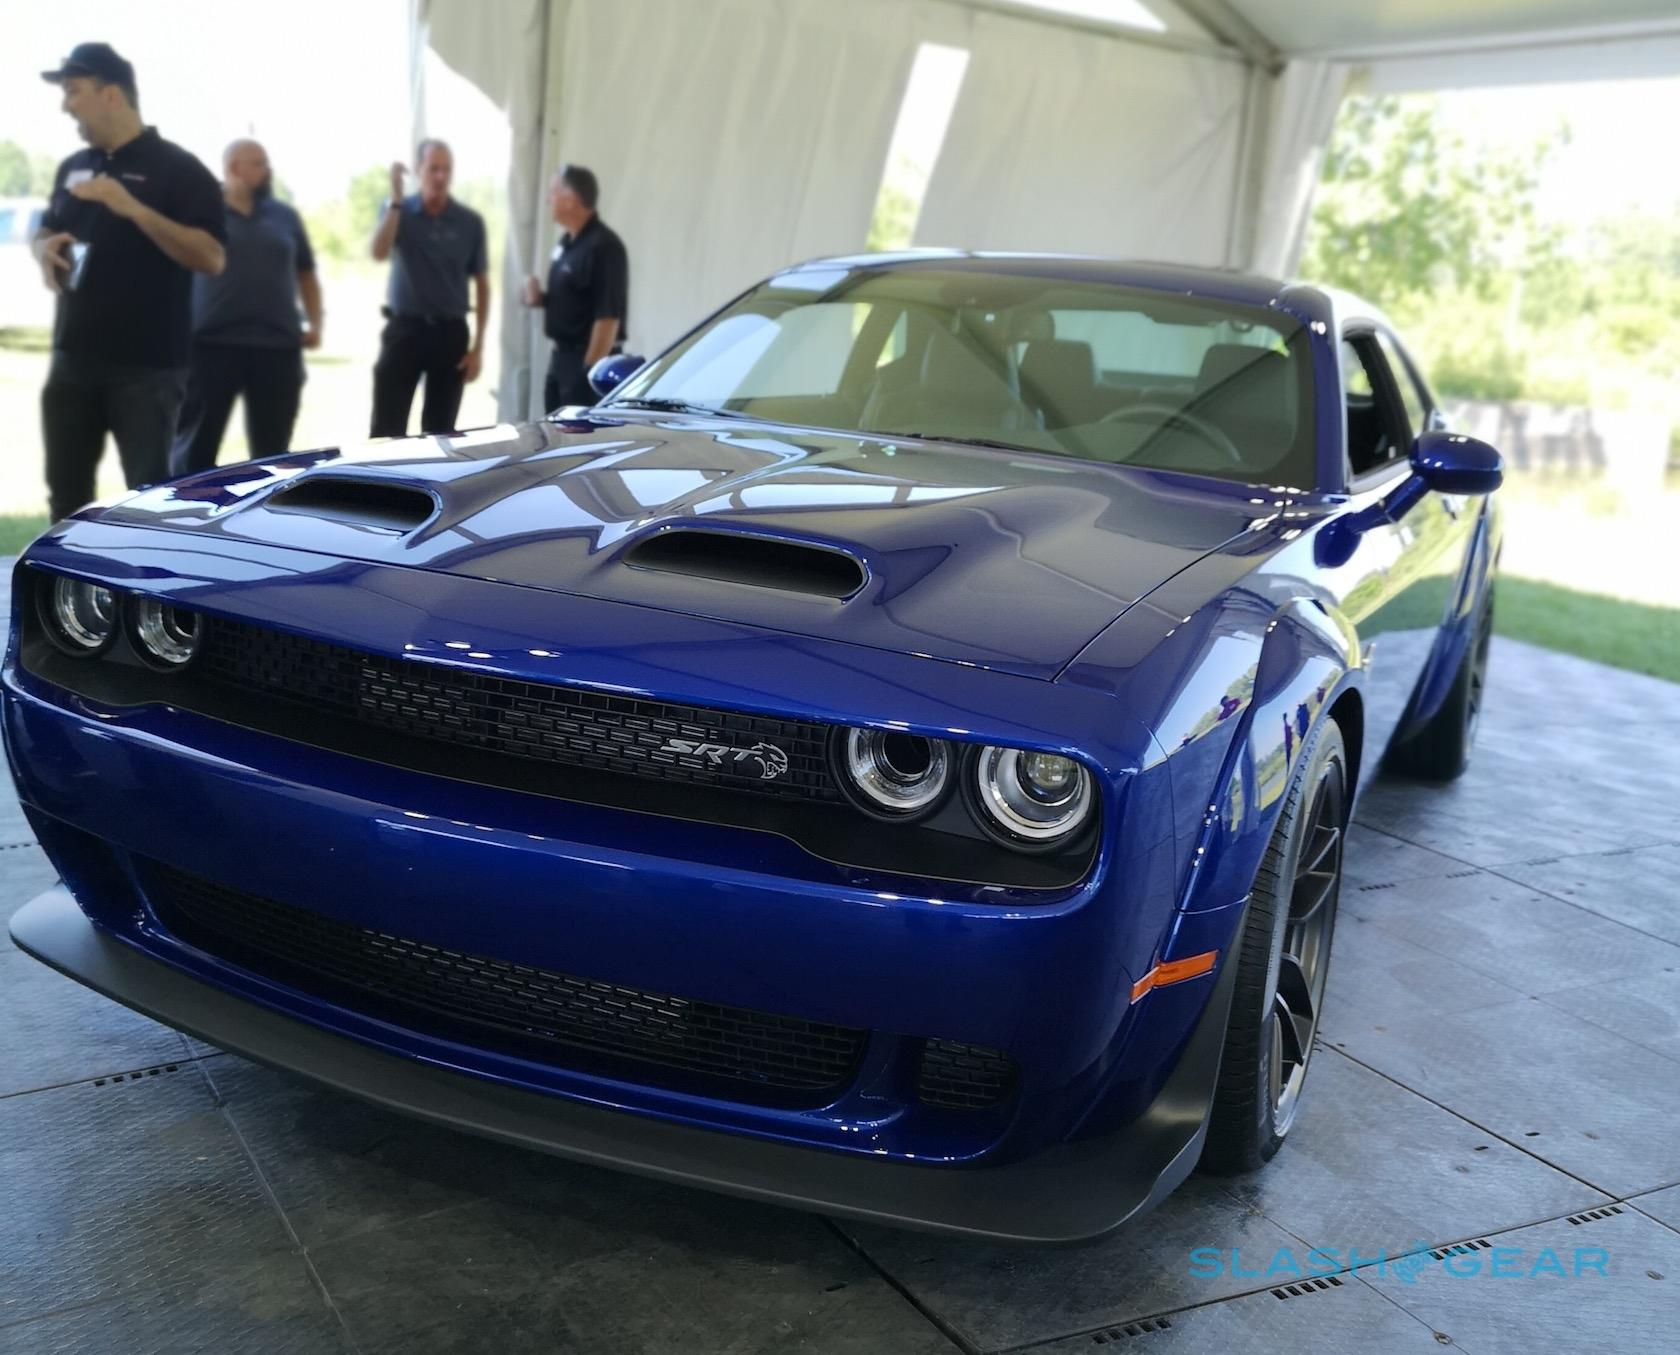 2019 Dodge Challenger Srt Hellcat Redeye Sells Its Soul To The Demon For 797hp Slashgear